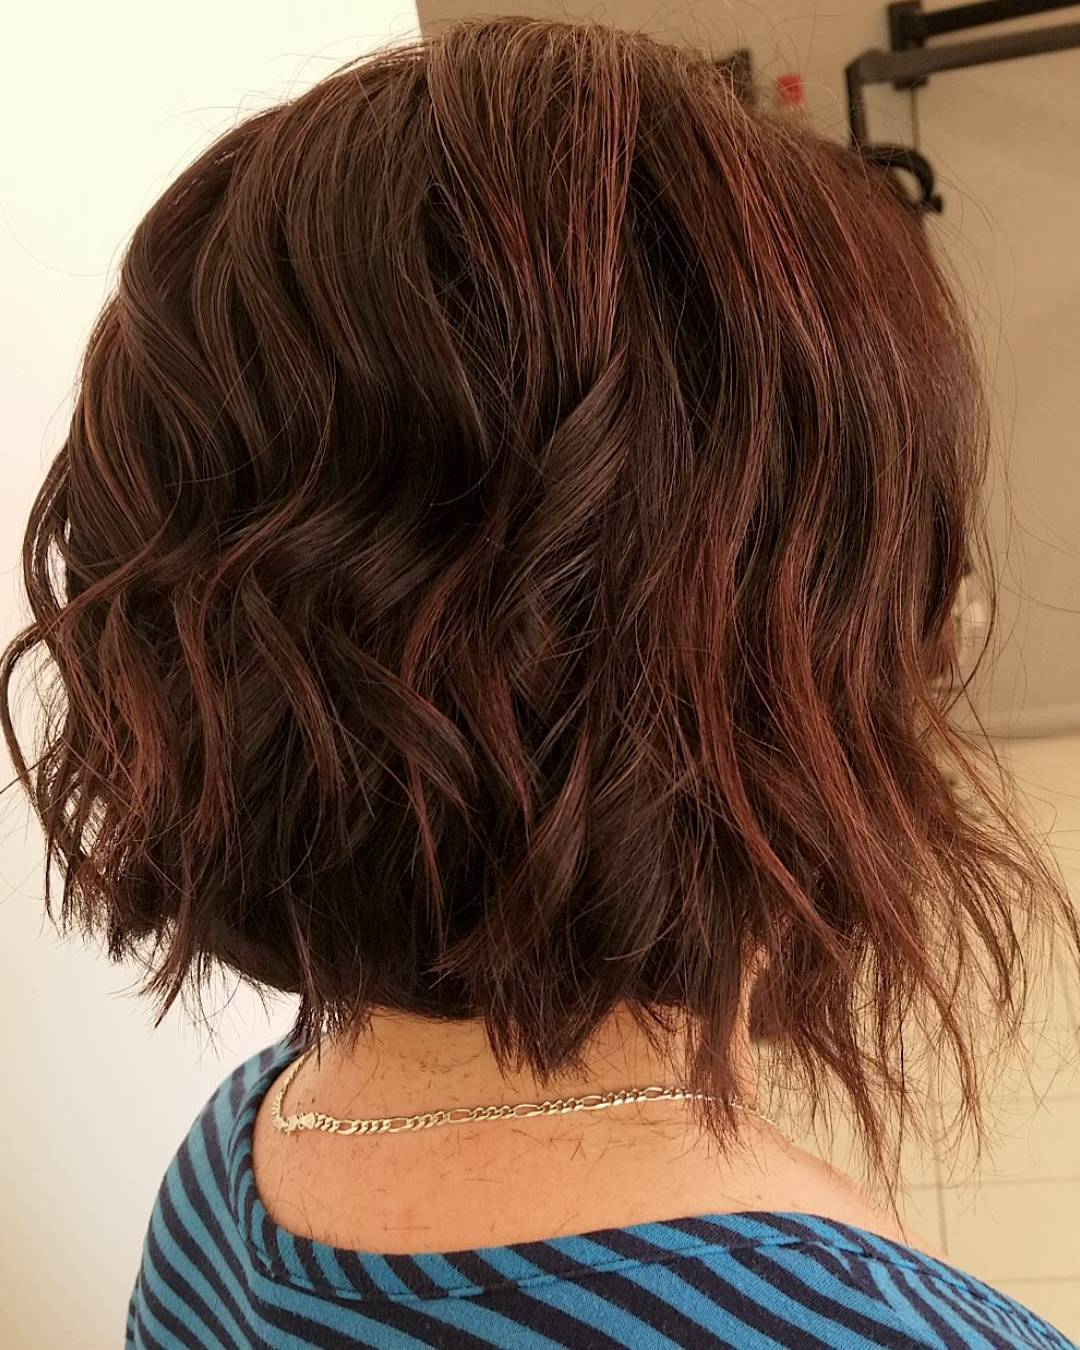 10 Modern Bob Haircuts for Well-Groomed Women: Short Hairstyles 2020